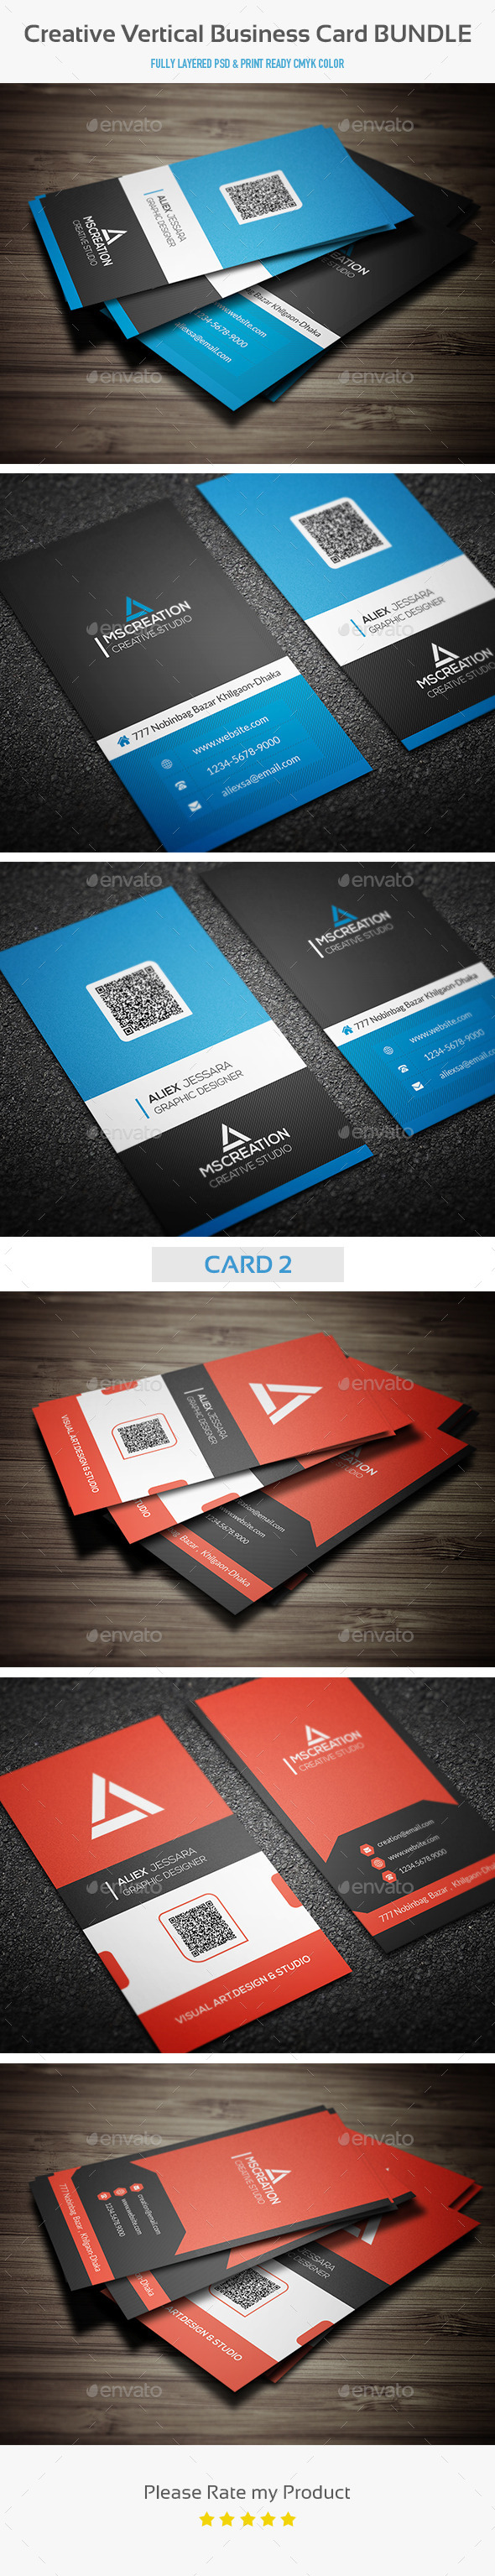 Creative Vertical Business Card Bundle - Creative Business Cards